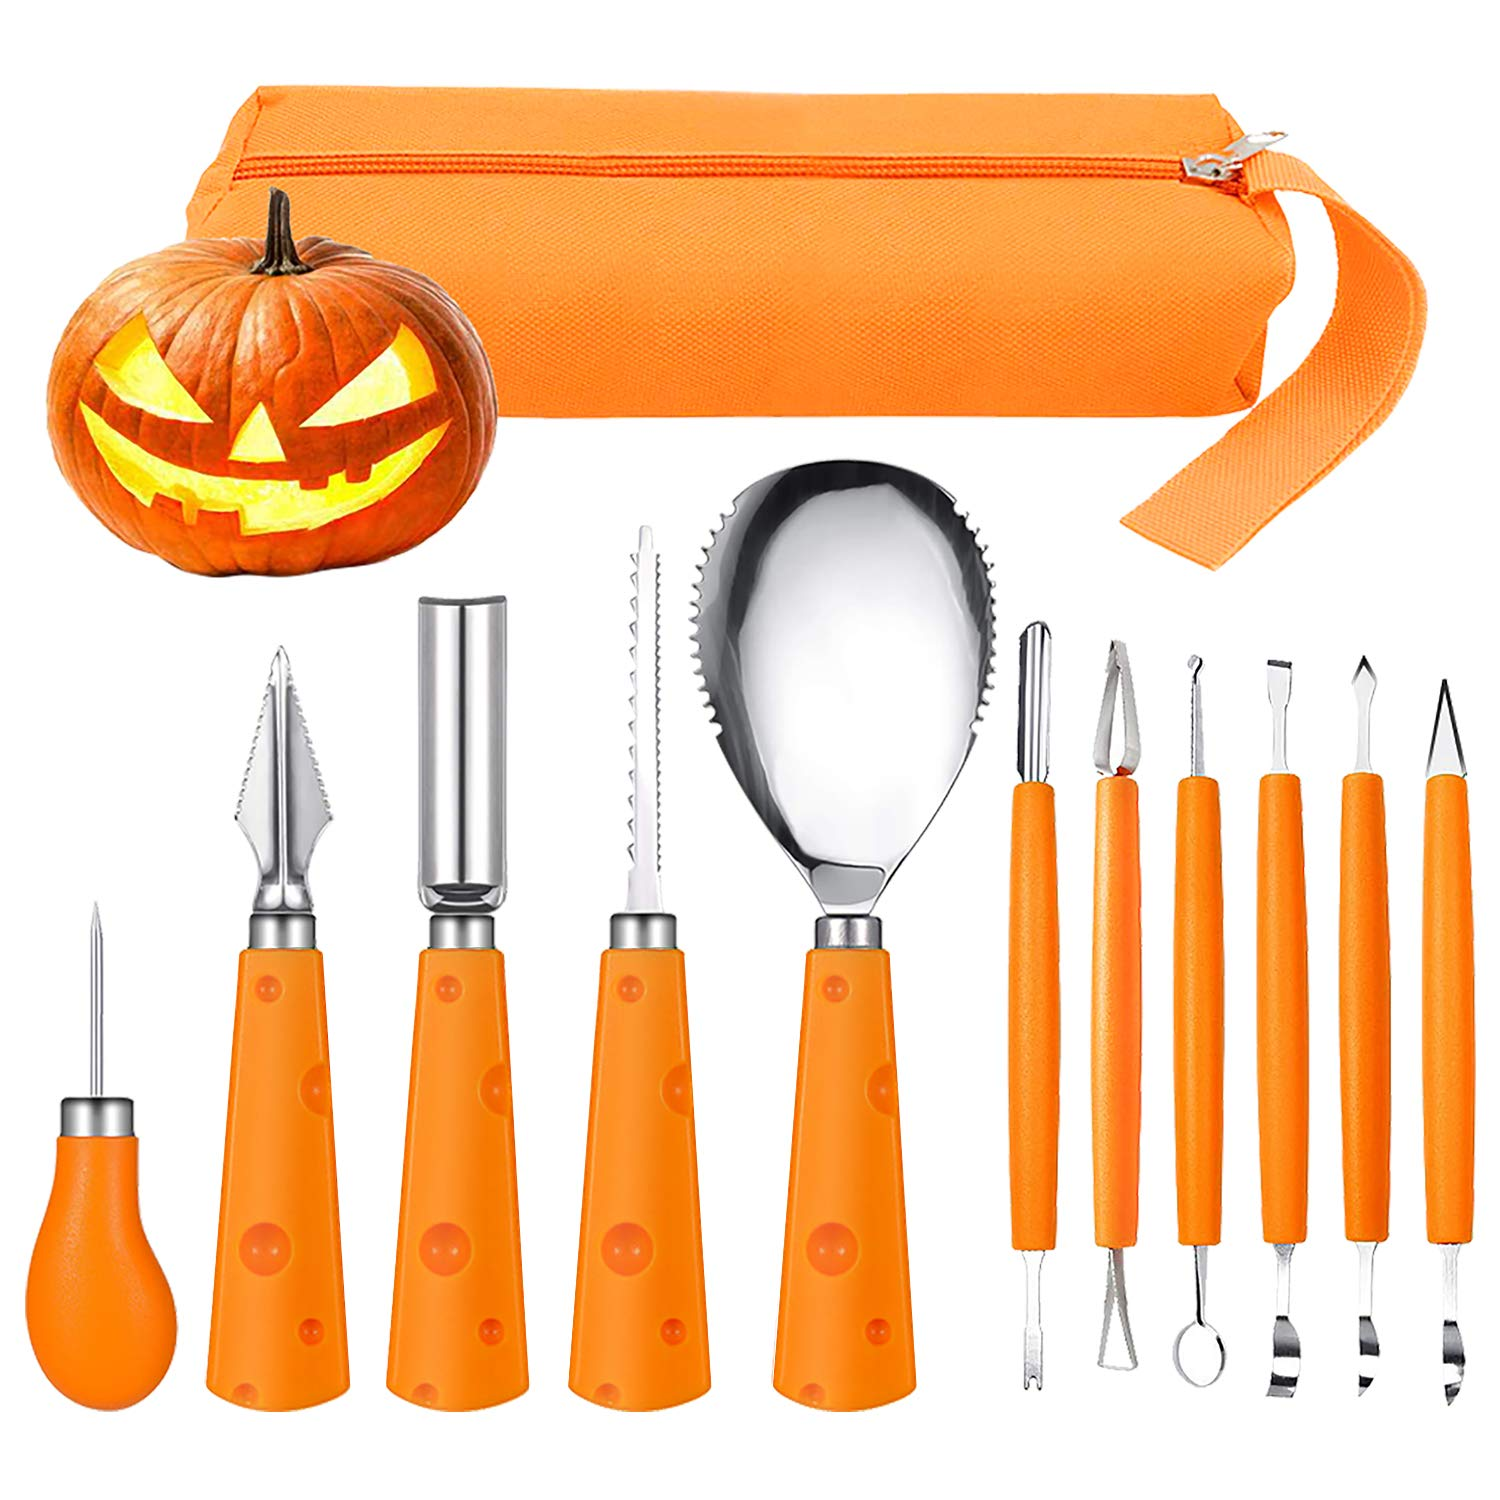 Halloween Pumpkin Carving Kit, FEOAMO 11 Pieces Professional Heavy Duty Stainless Steel Jack O Lanterns Pumpkin Carving Tools Set for Halloween Kids Adults Party Decorations, with Storage Carrying Bag by FEOAMO